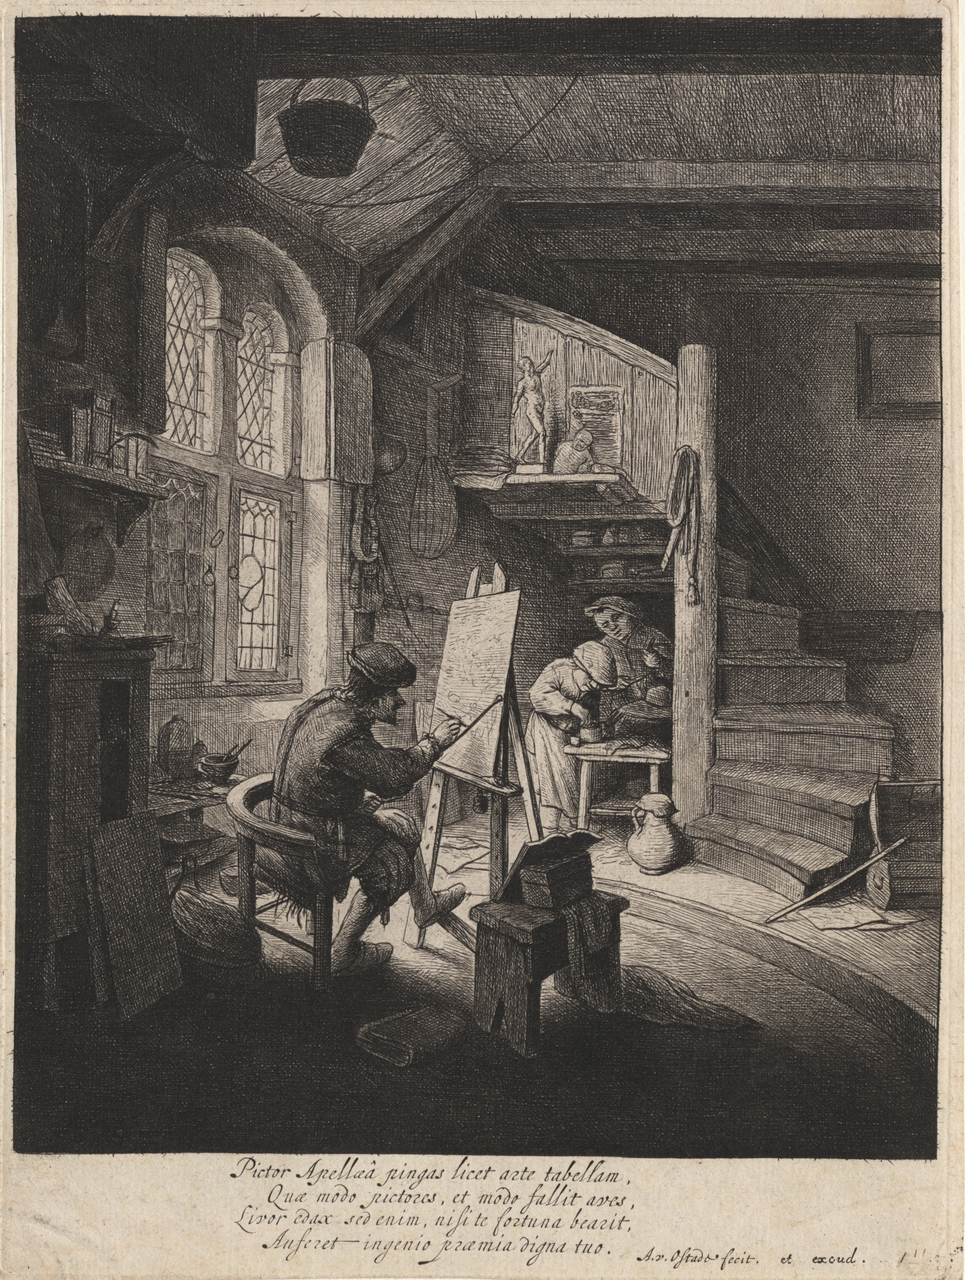 Ostade, Adriaen Van (Etcher, 1610-85) The Painter (c.1647) etching and drypoint plate 23.4 x 17.4 1979.2050.000.000 Baillieu Library Collection, the University of Melbourne.